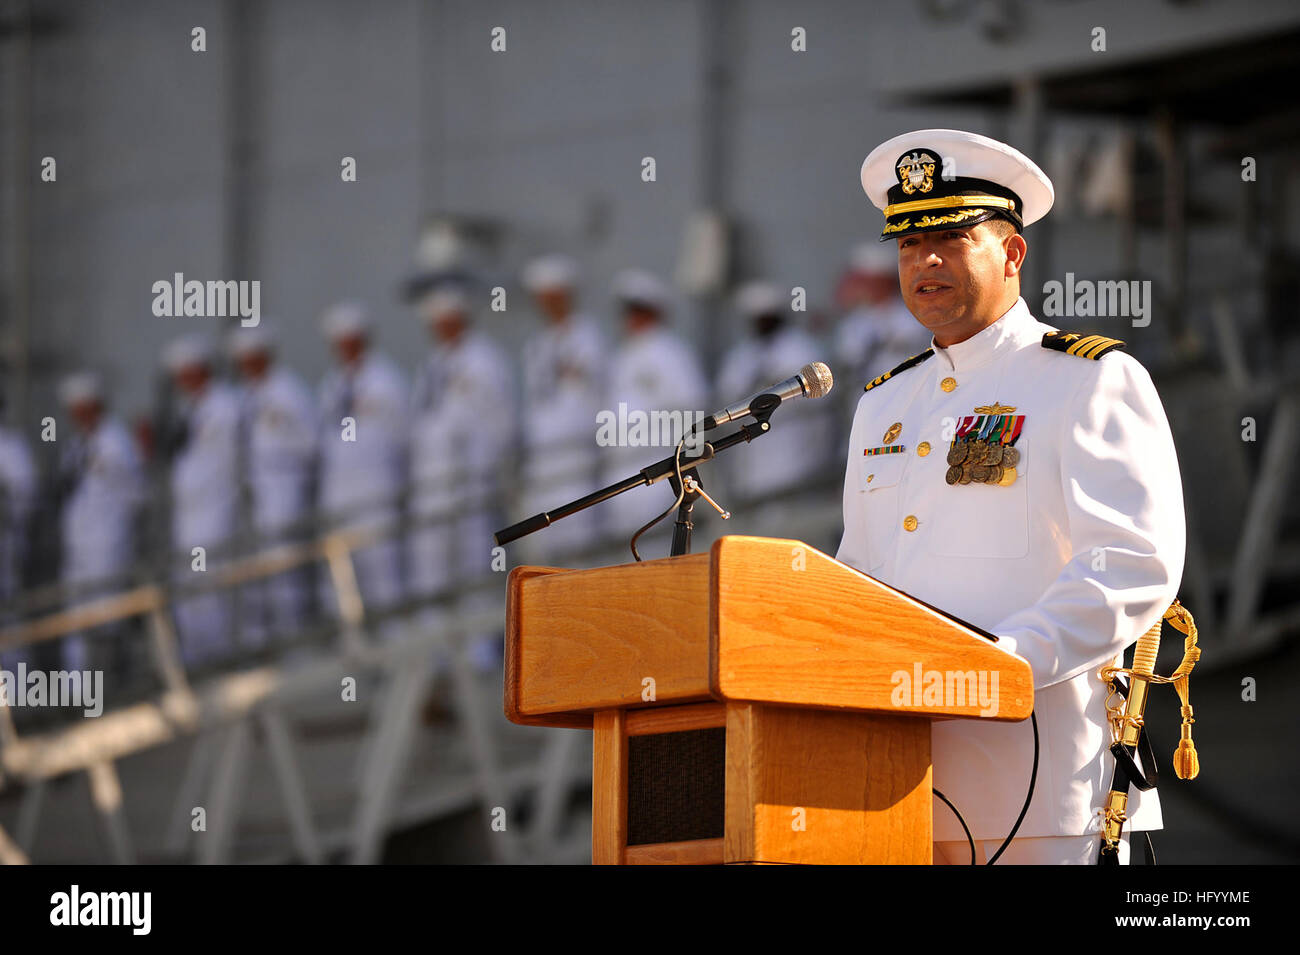 110729-N-YR391-007 MAYPORT, Fla. (July 29, 2011) Cmdr. Rolando Ramirez, commanding officer of the guided-missile - Stock Image